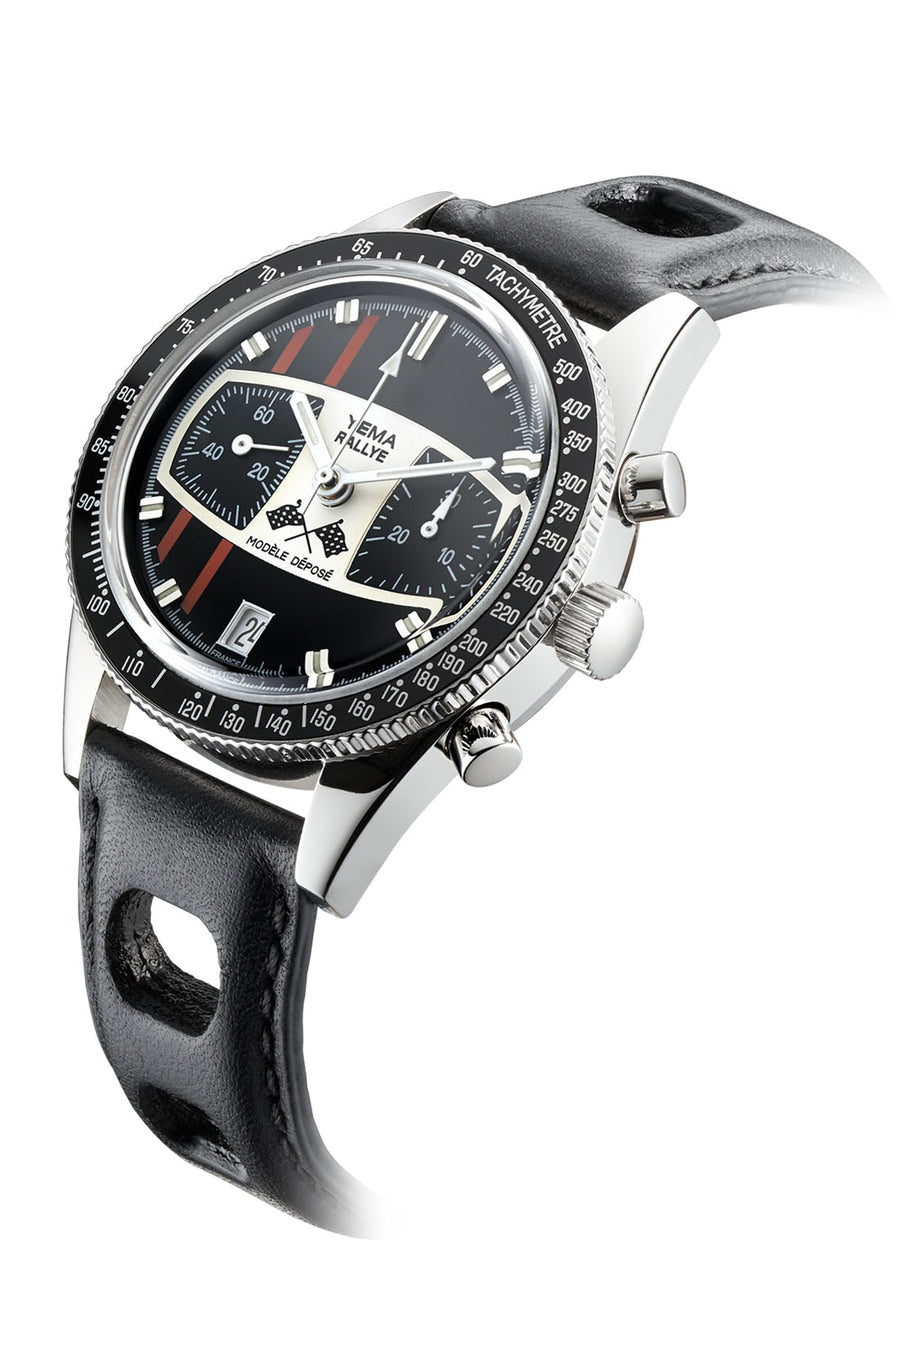 YEMA Rallye Andretti Limited Edition watch, black leather bracelet, blakc white and red dial.